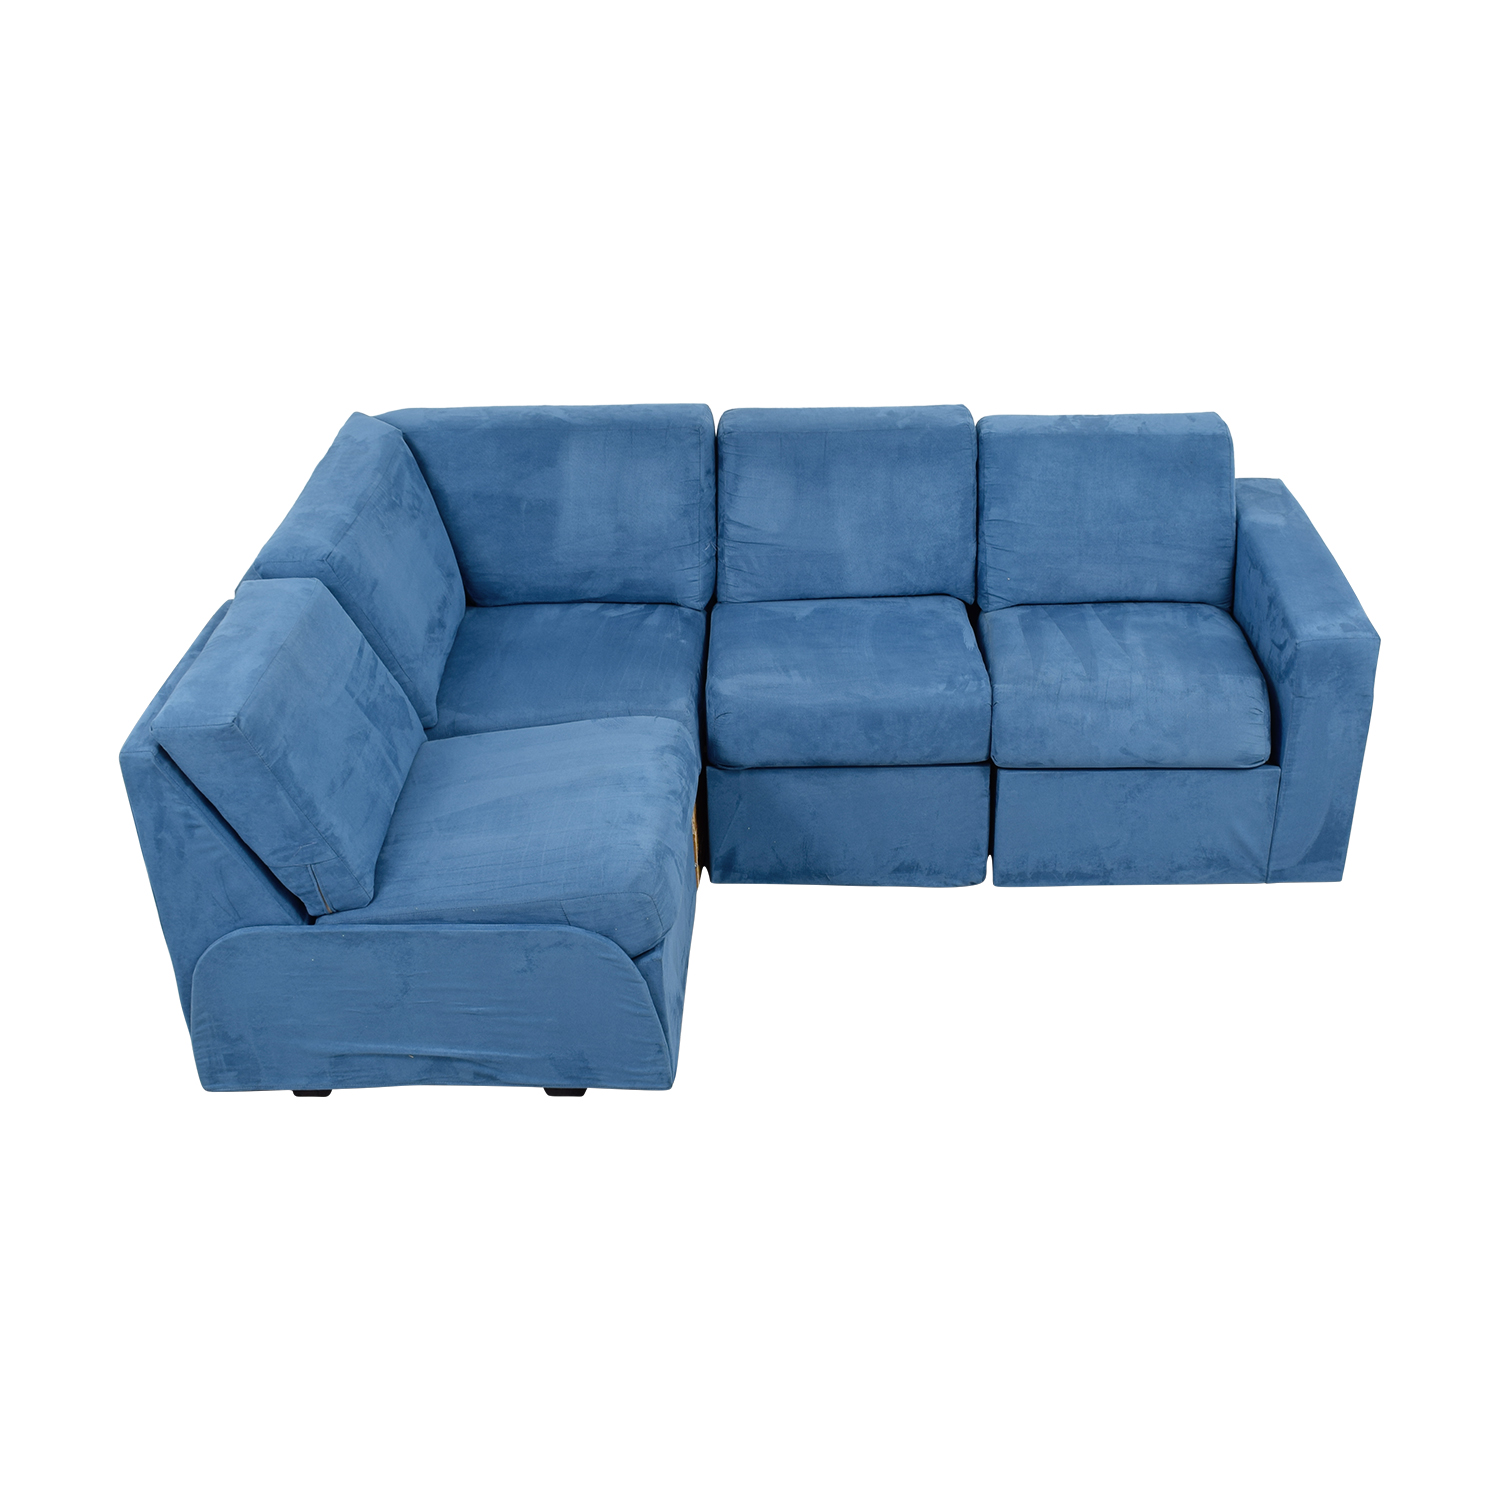 Home Reserve Home Reserve Ray Blue Tux Arm Sectional Sofas